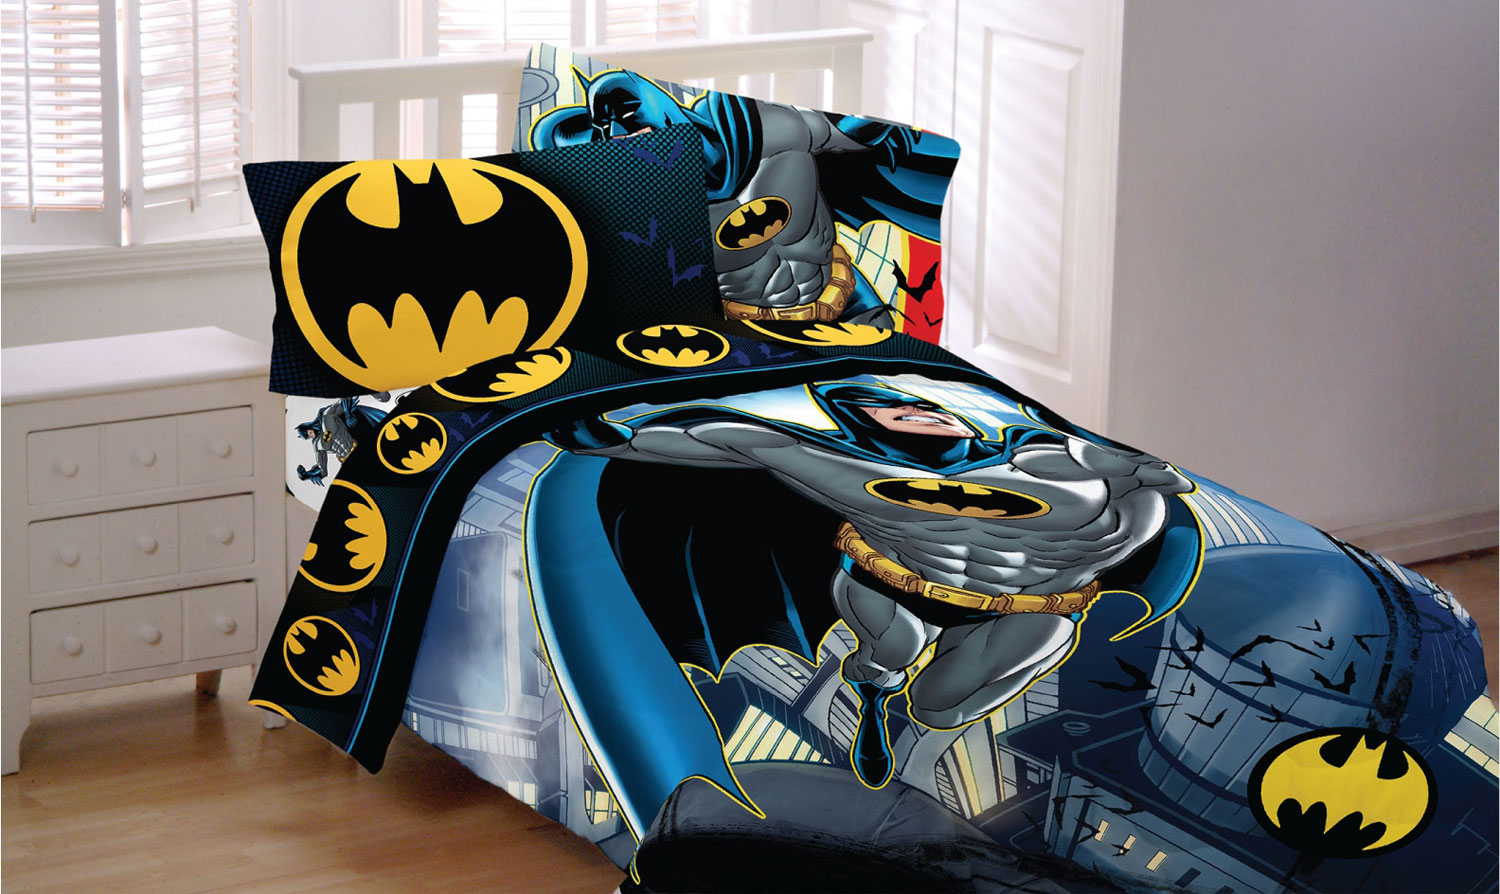 Batman polyester curtains are wrinkle resistantThese Batman